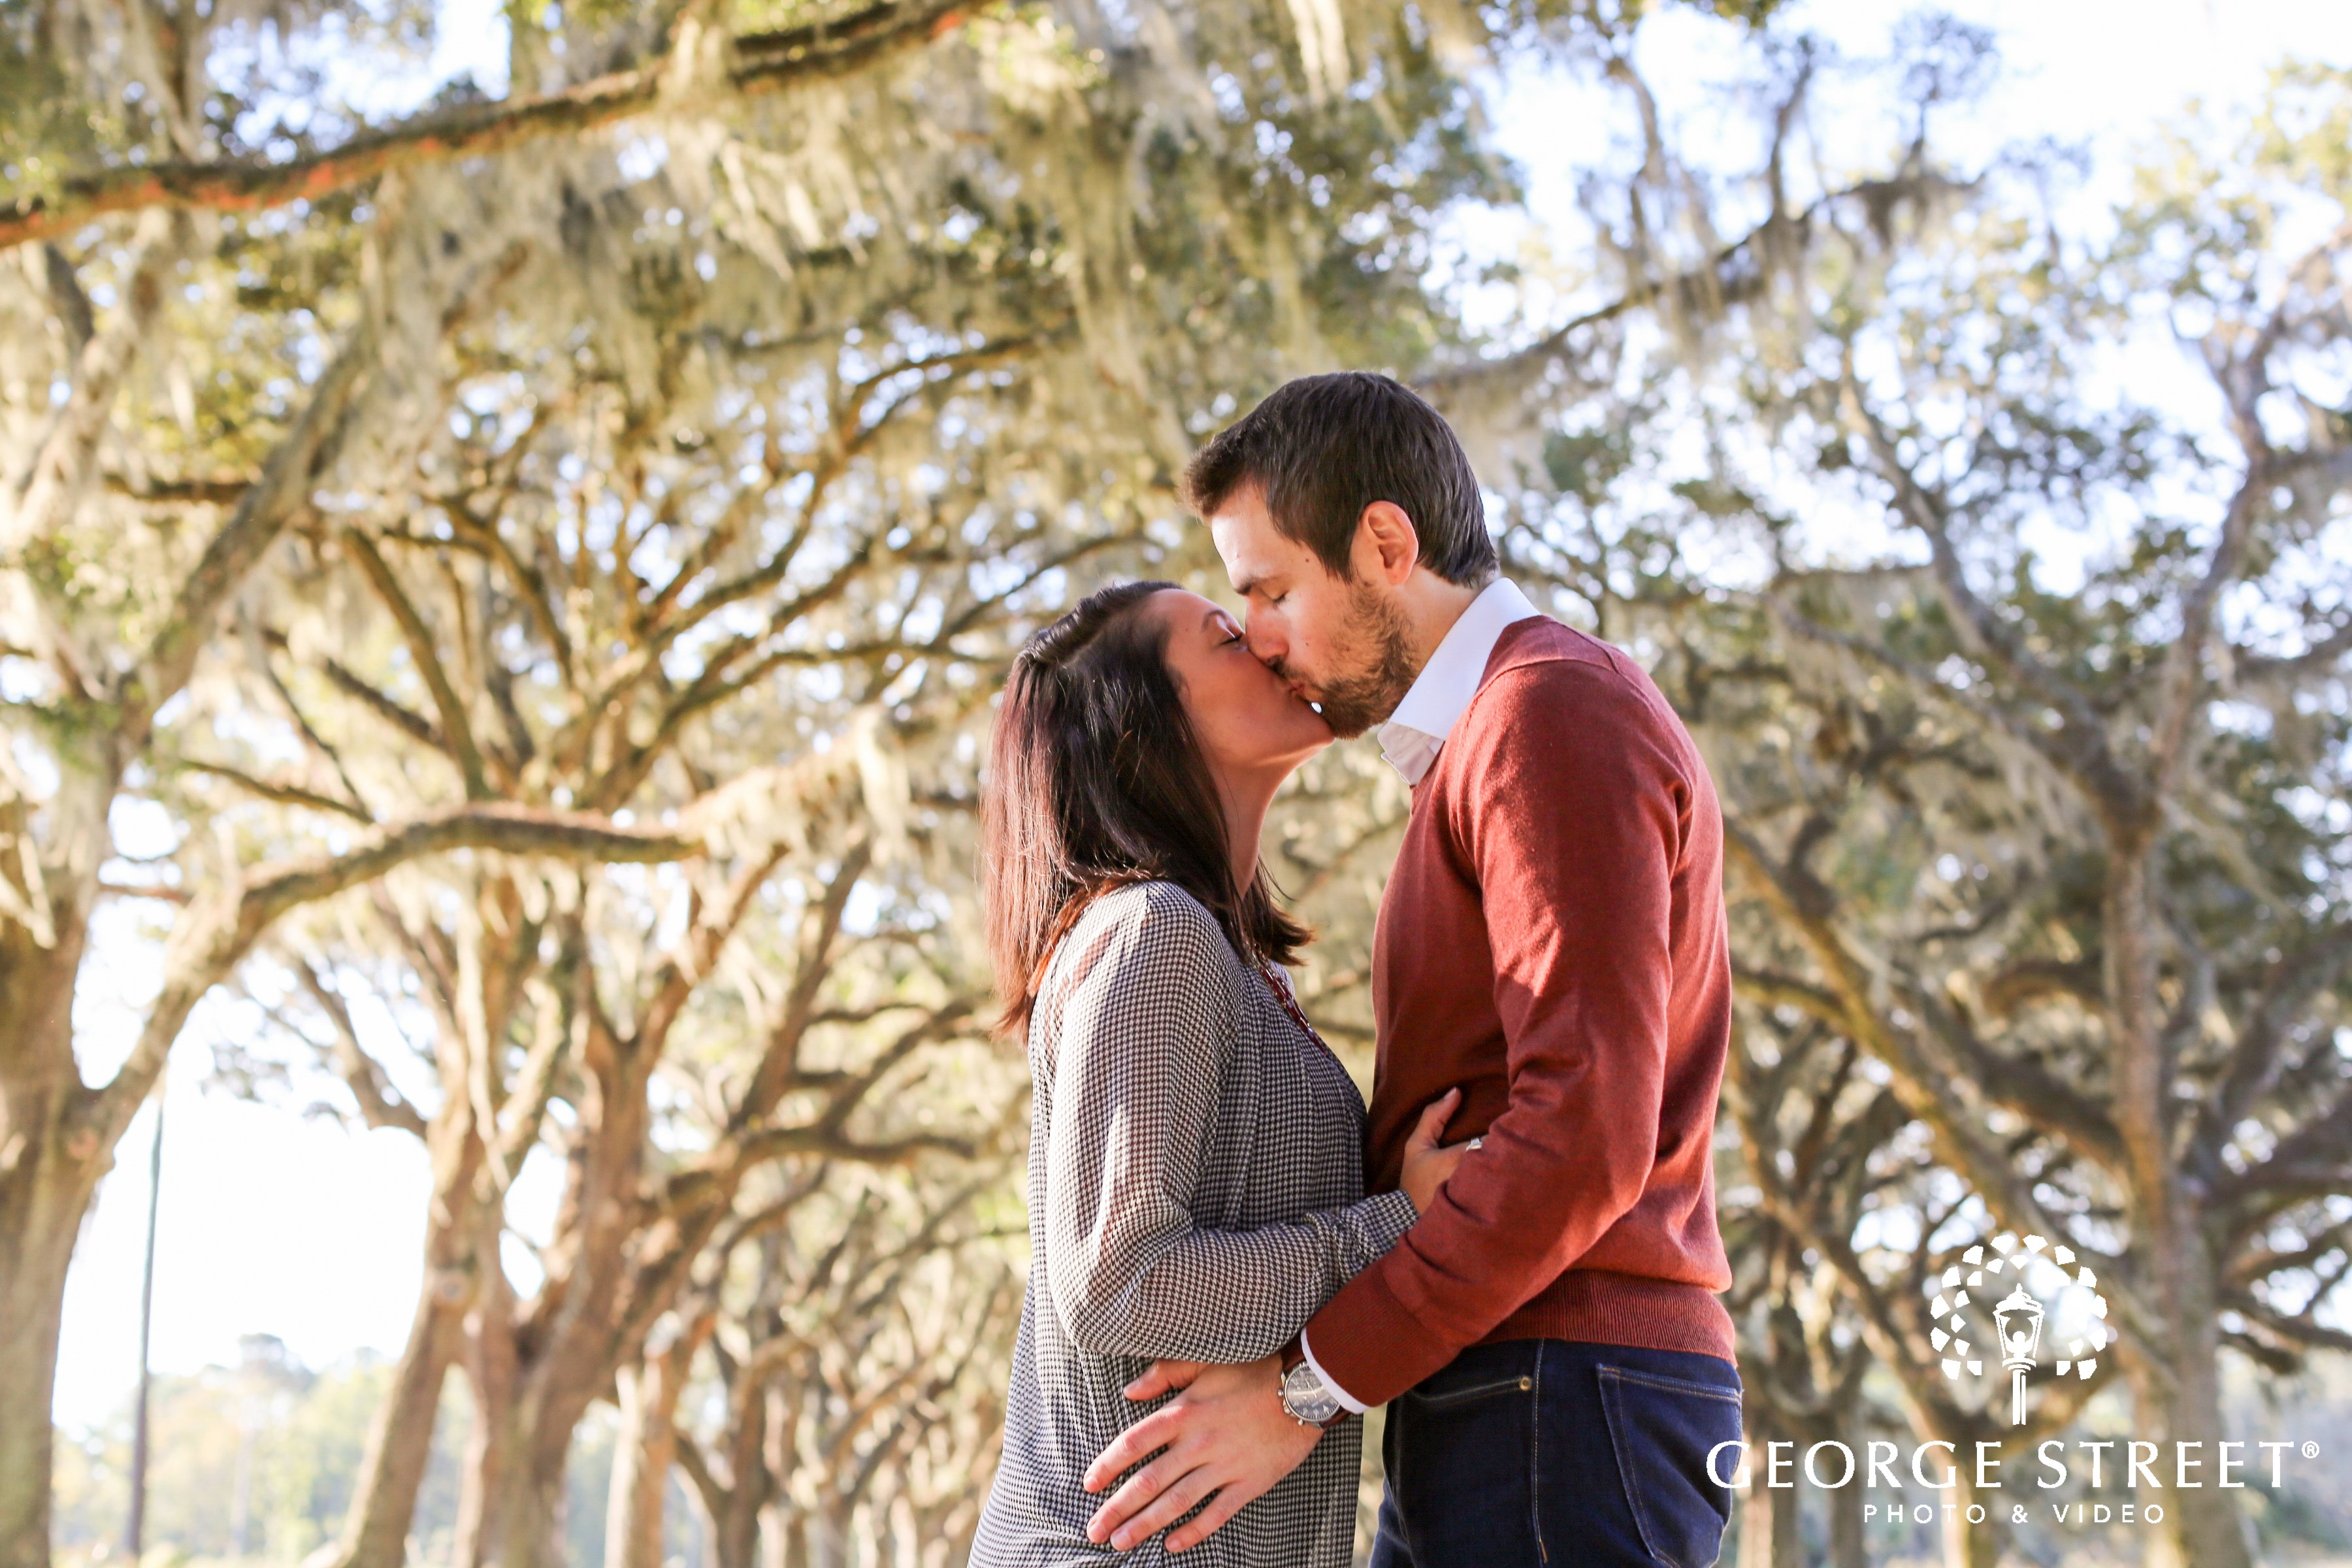 George Street's Top 3 Engagement Session Locations in Savannah